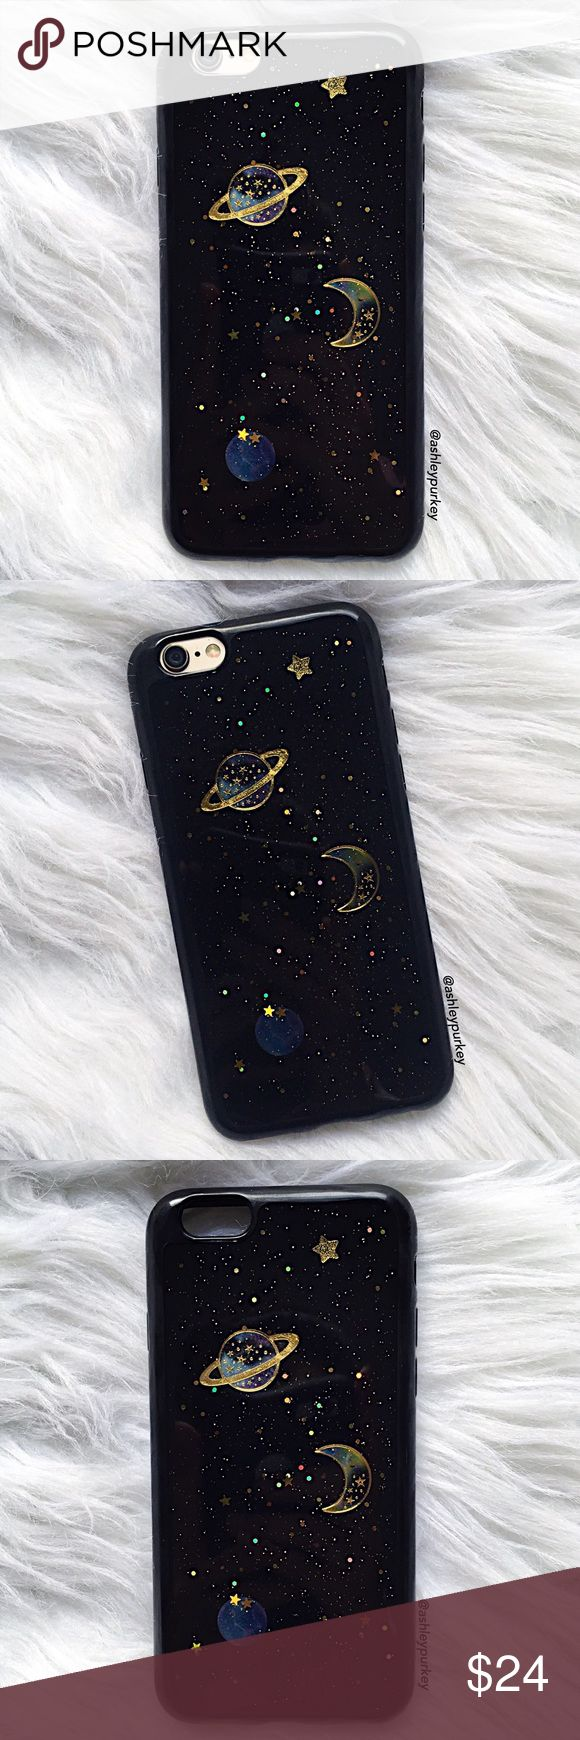 "black sparkly space iPhone 7 - 7 Plus phone case •sizes: iPhone 7 (4.7"") iPhone 7 Plus (5.5"")  •flexible silicone  •phone not included   •no trades    *please make sure you purchase the correct size case. i am not responsible if you purchase the wrong size  item #: 119 B-Long Boutique  Accessories Phone Cases"